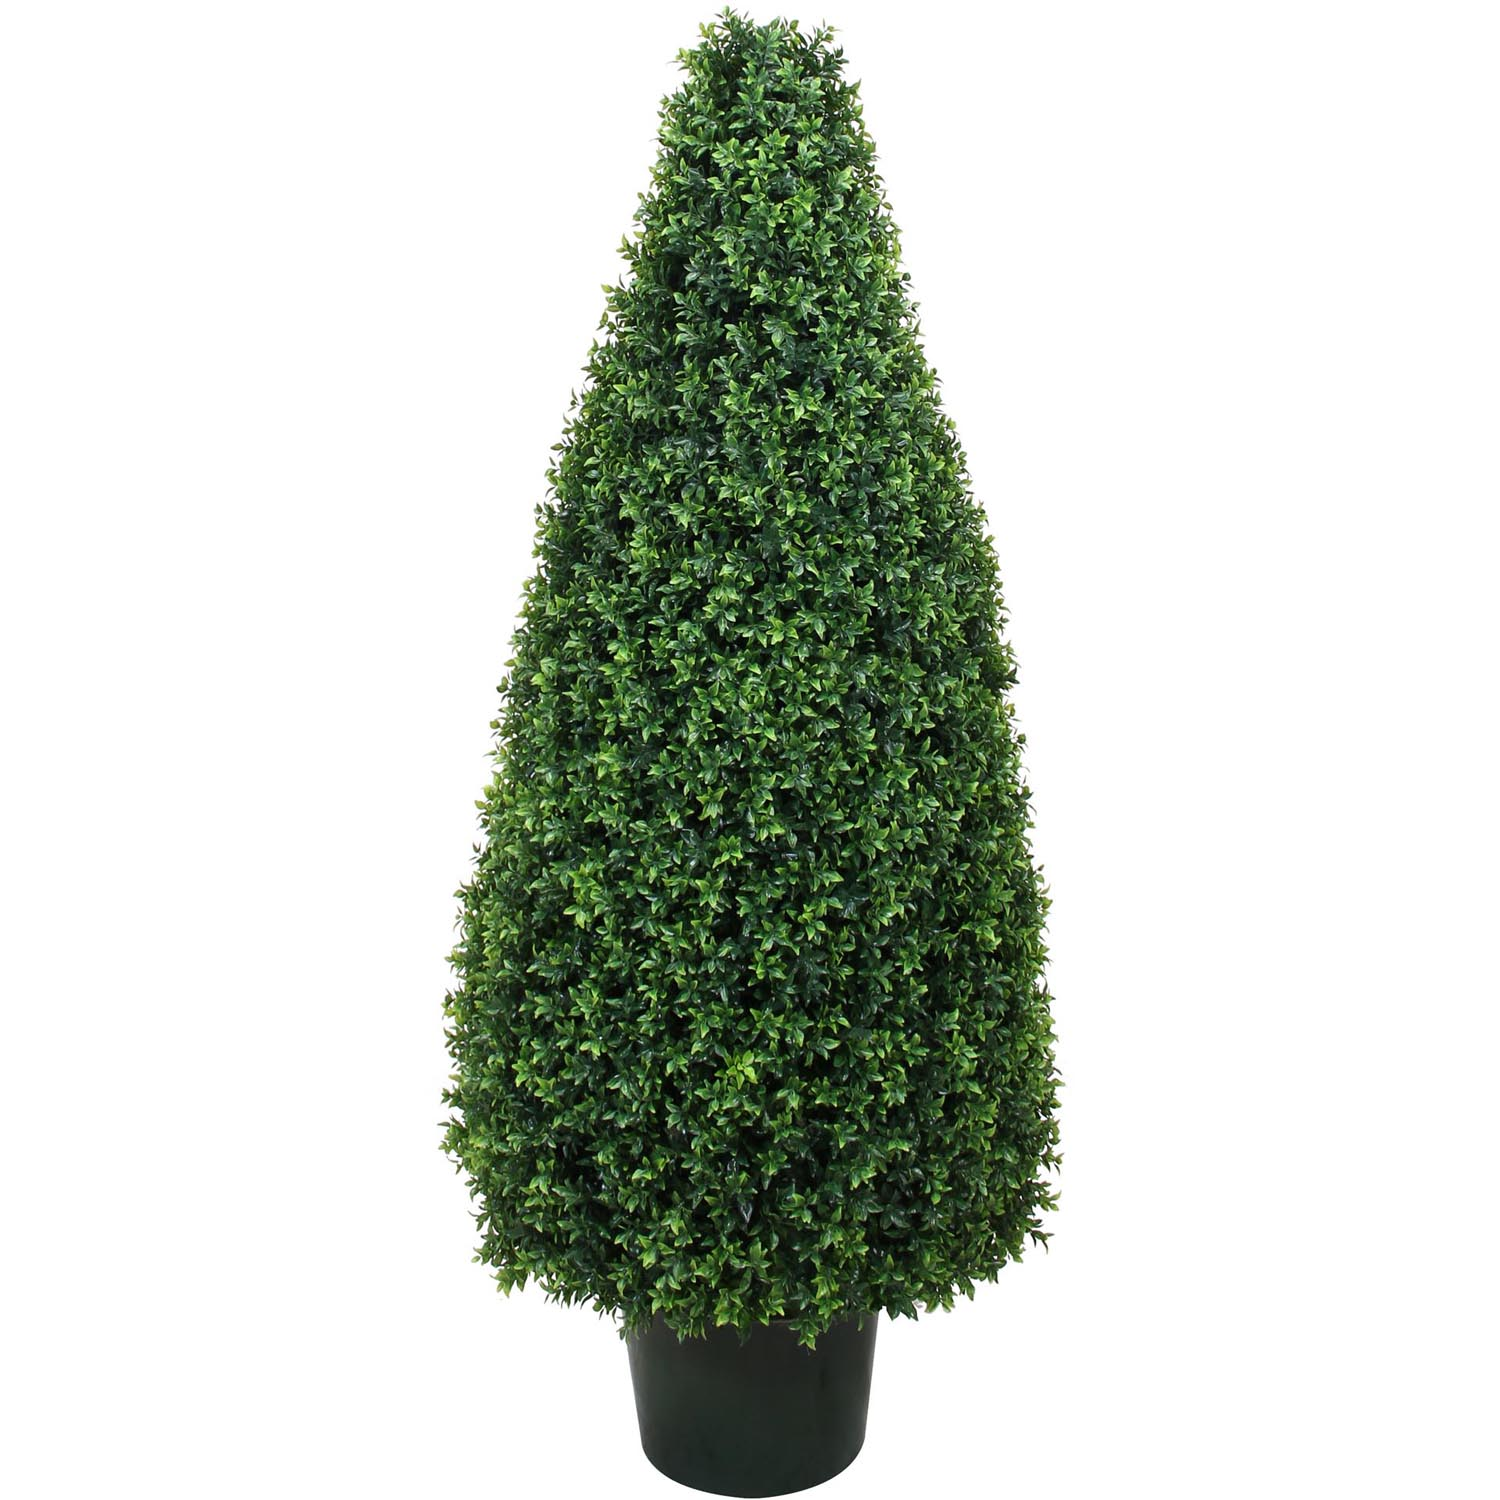 54 Inch Uv Protected Basil Cone Topiary: Potted